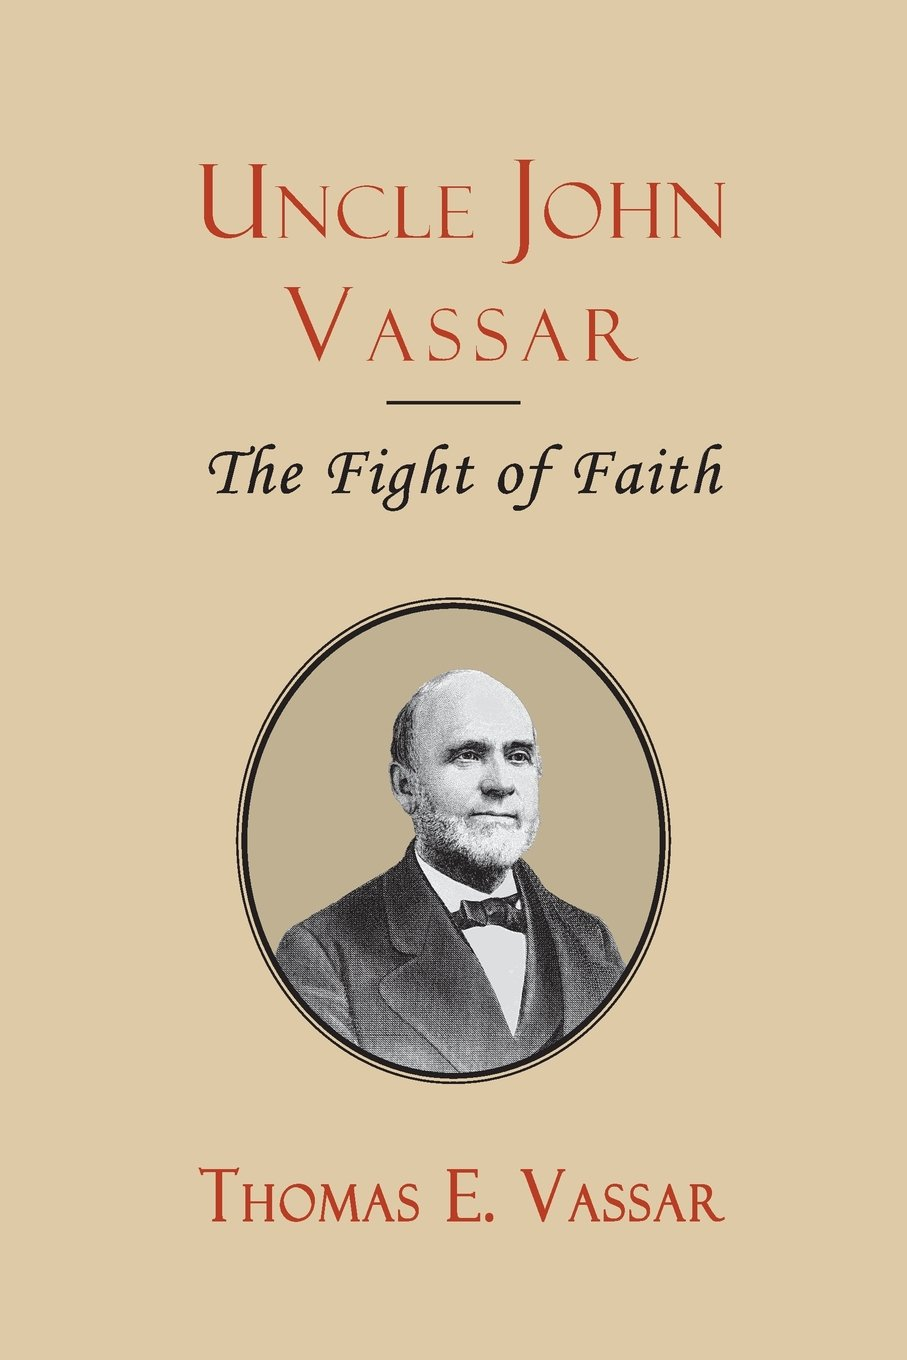 Download Uncle John Vassar: The Fight of Faith ebook